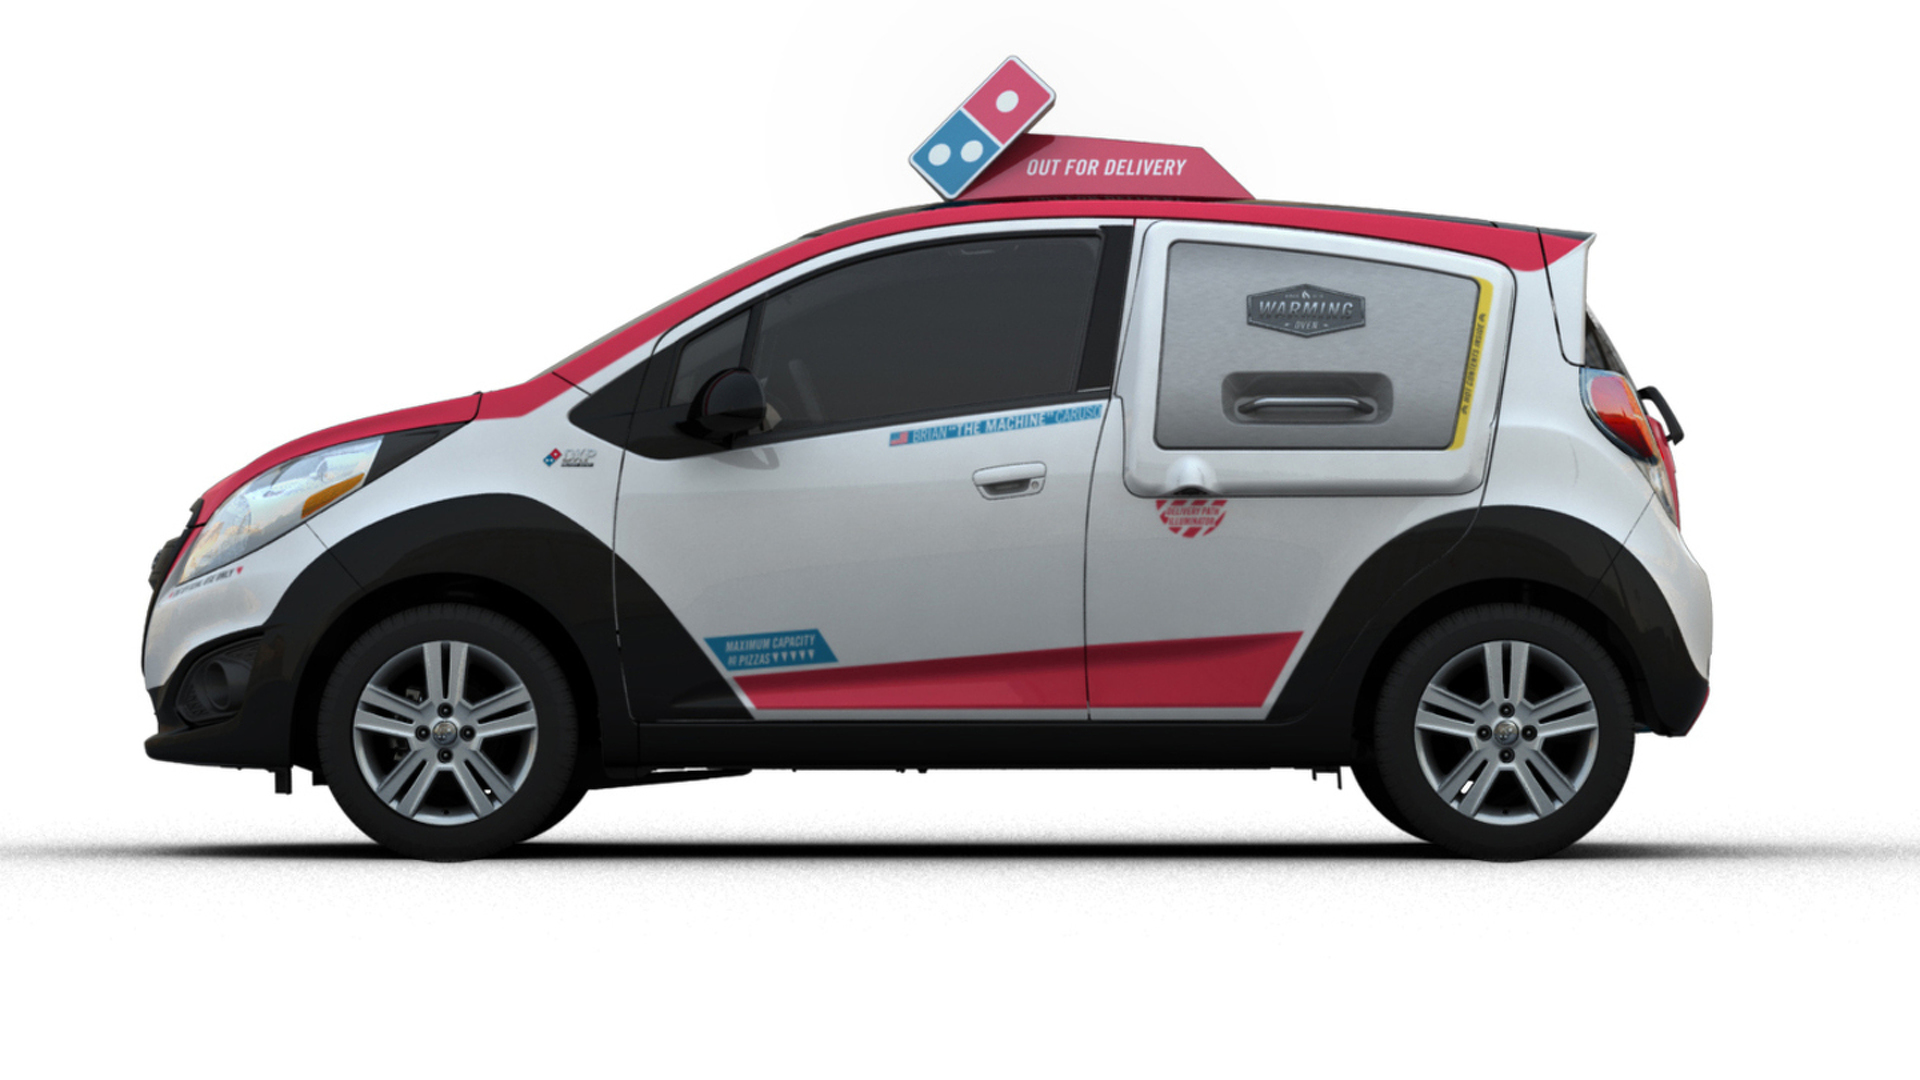 Chevrolet and Domino's unveil their custom DXP pizza delivery vehicle